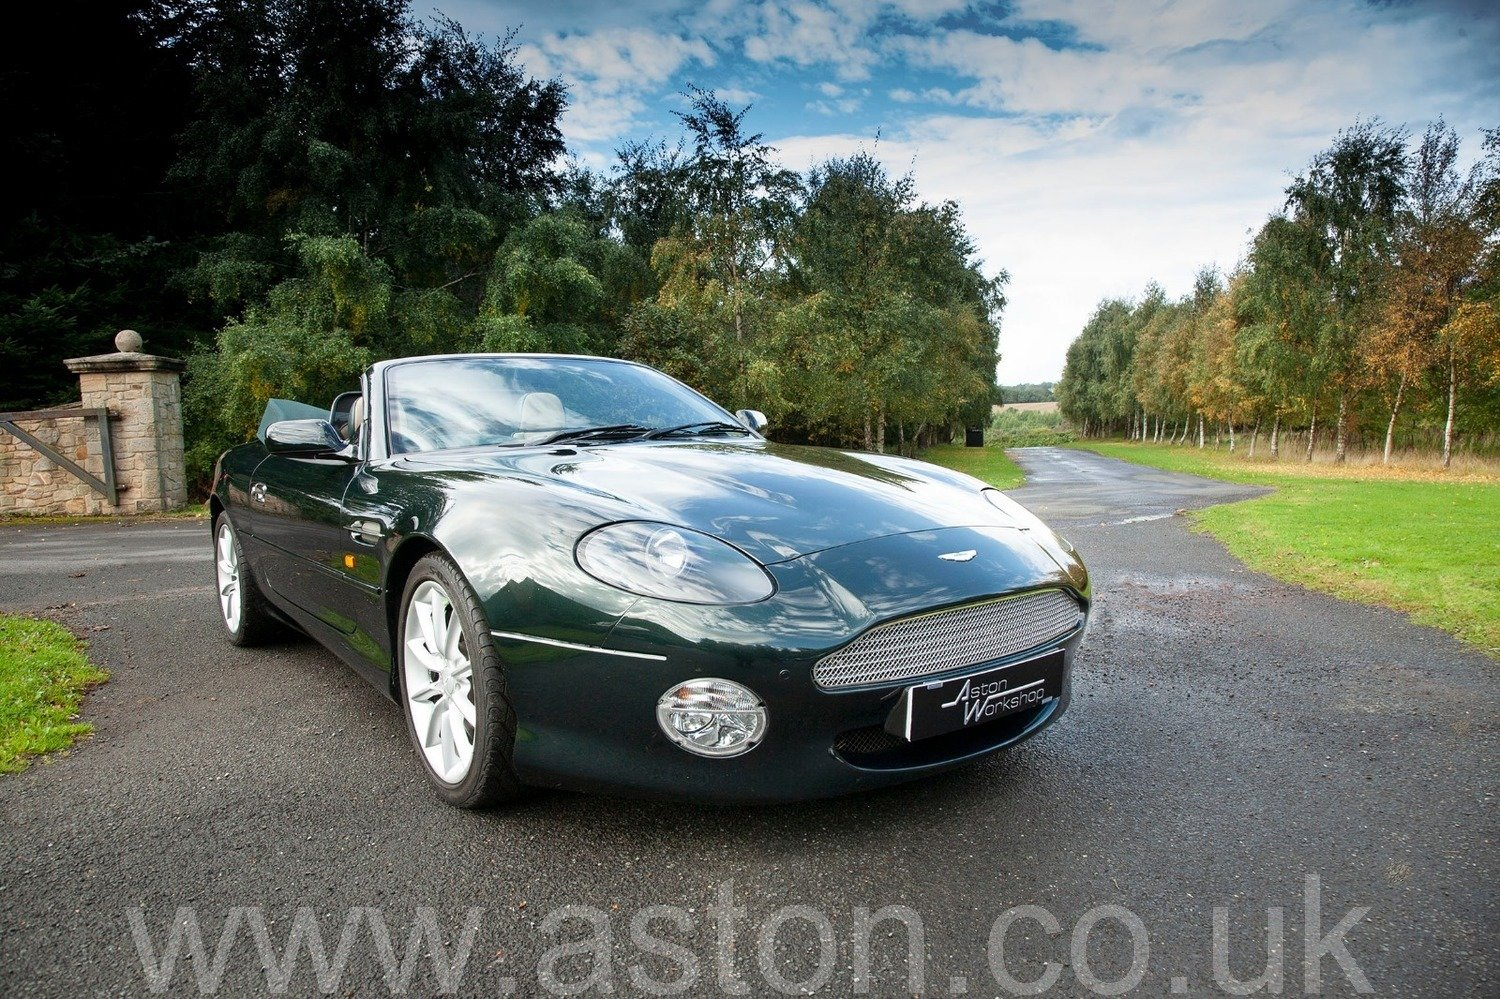 2004 DB7 Vantage Volante  For Sale (picture 1 of 6)